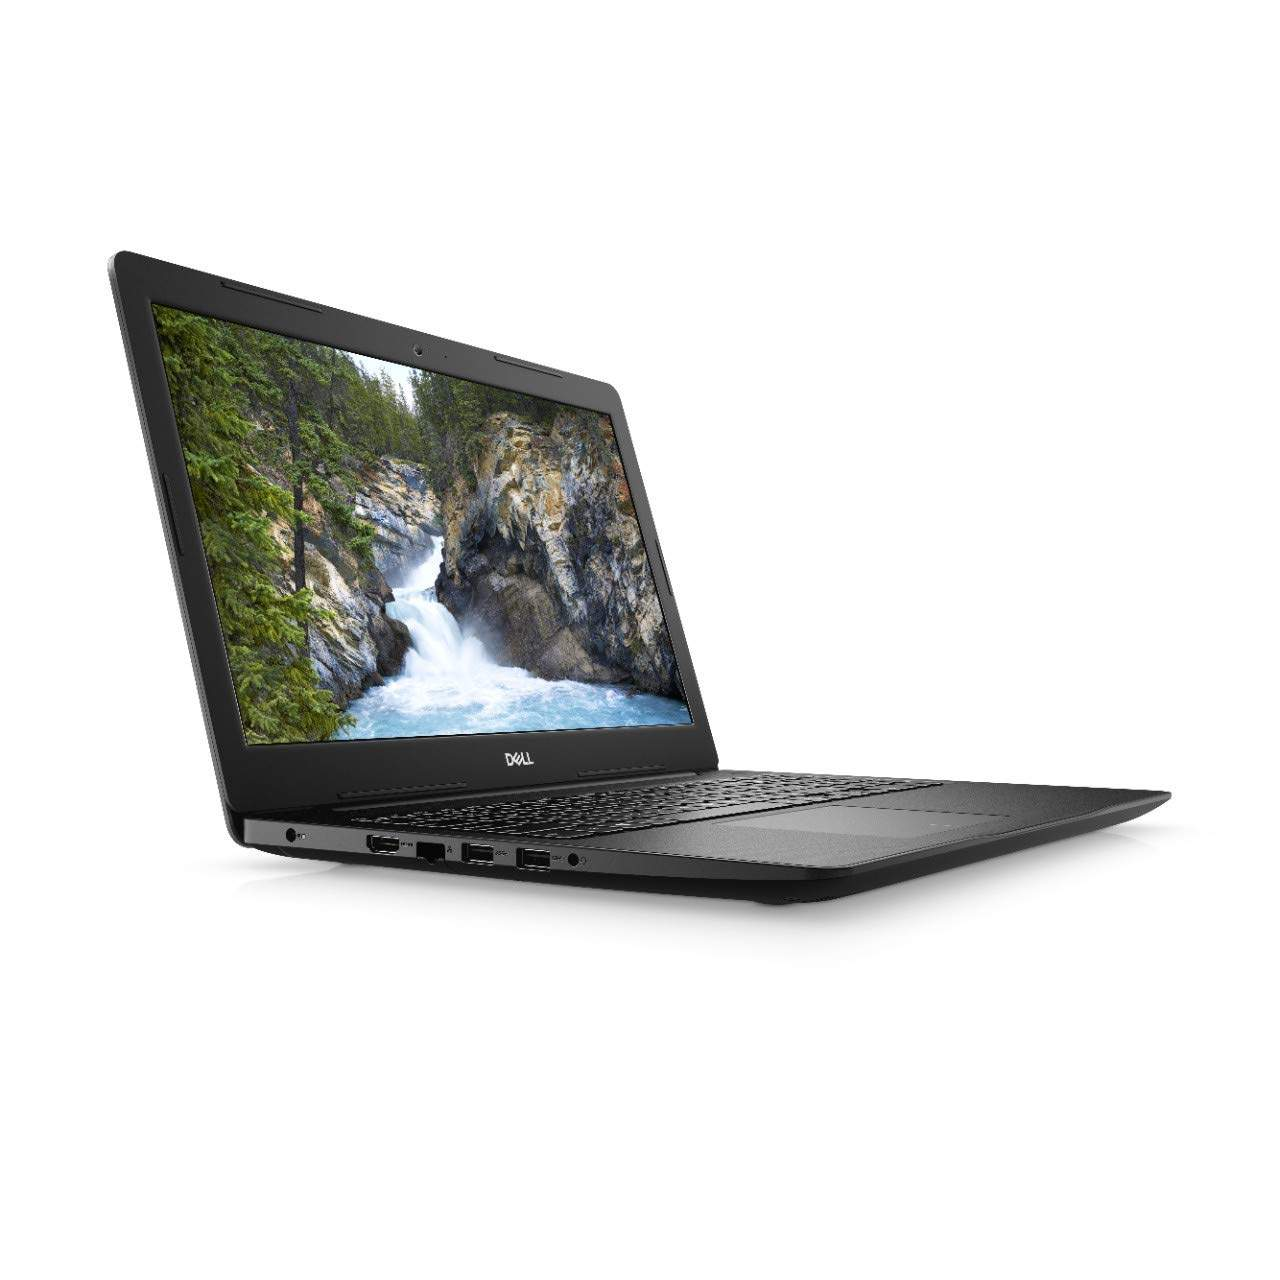 Dell Vostro 3590 15.6- FHD Laptop (10th Gen Core I3-10110U/4GB/1TB HDD/Windows 10 + MS Office/Intel HD Graphics) Black [B089QQ55HC]